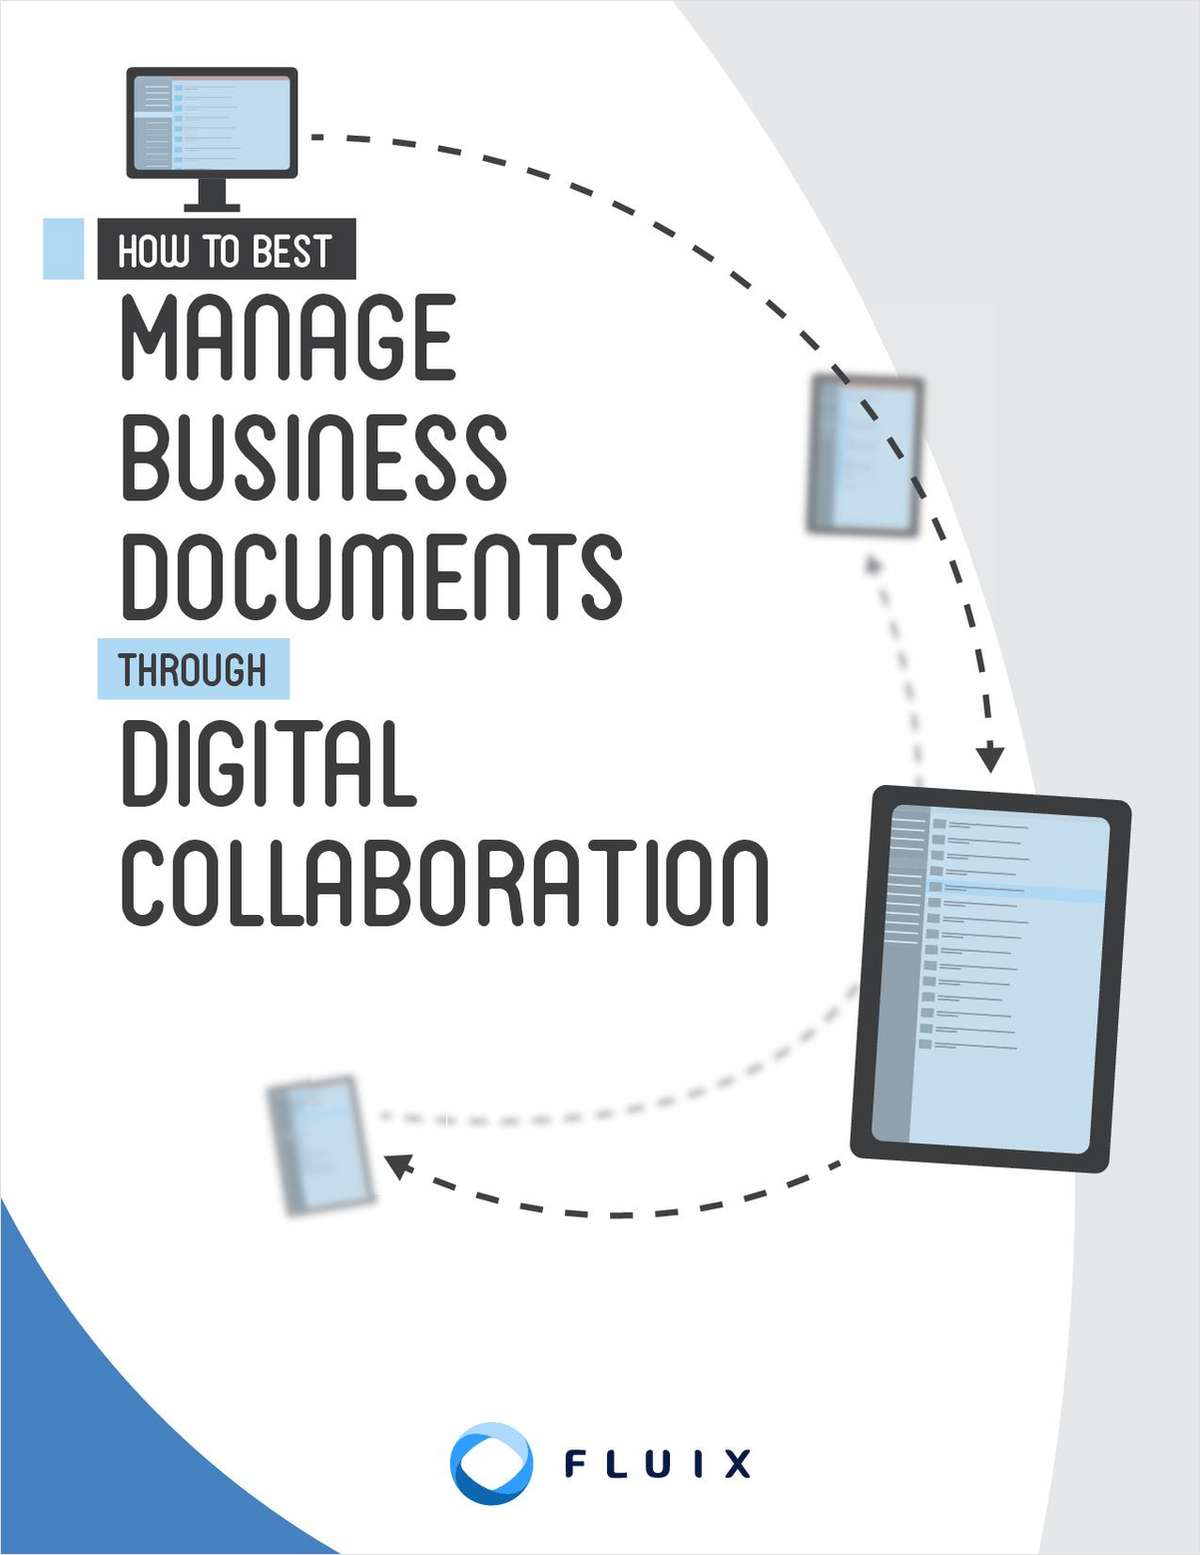 How to Best Manage Business Documents Through Digital Collaboration